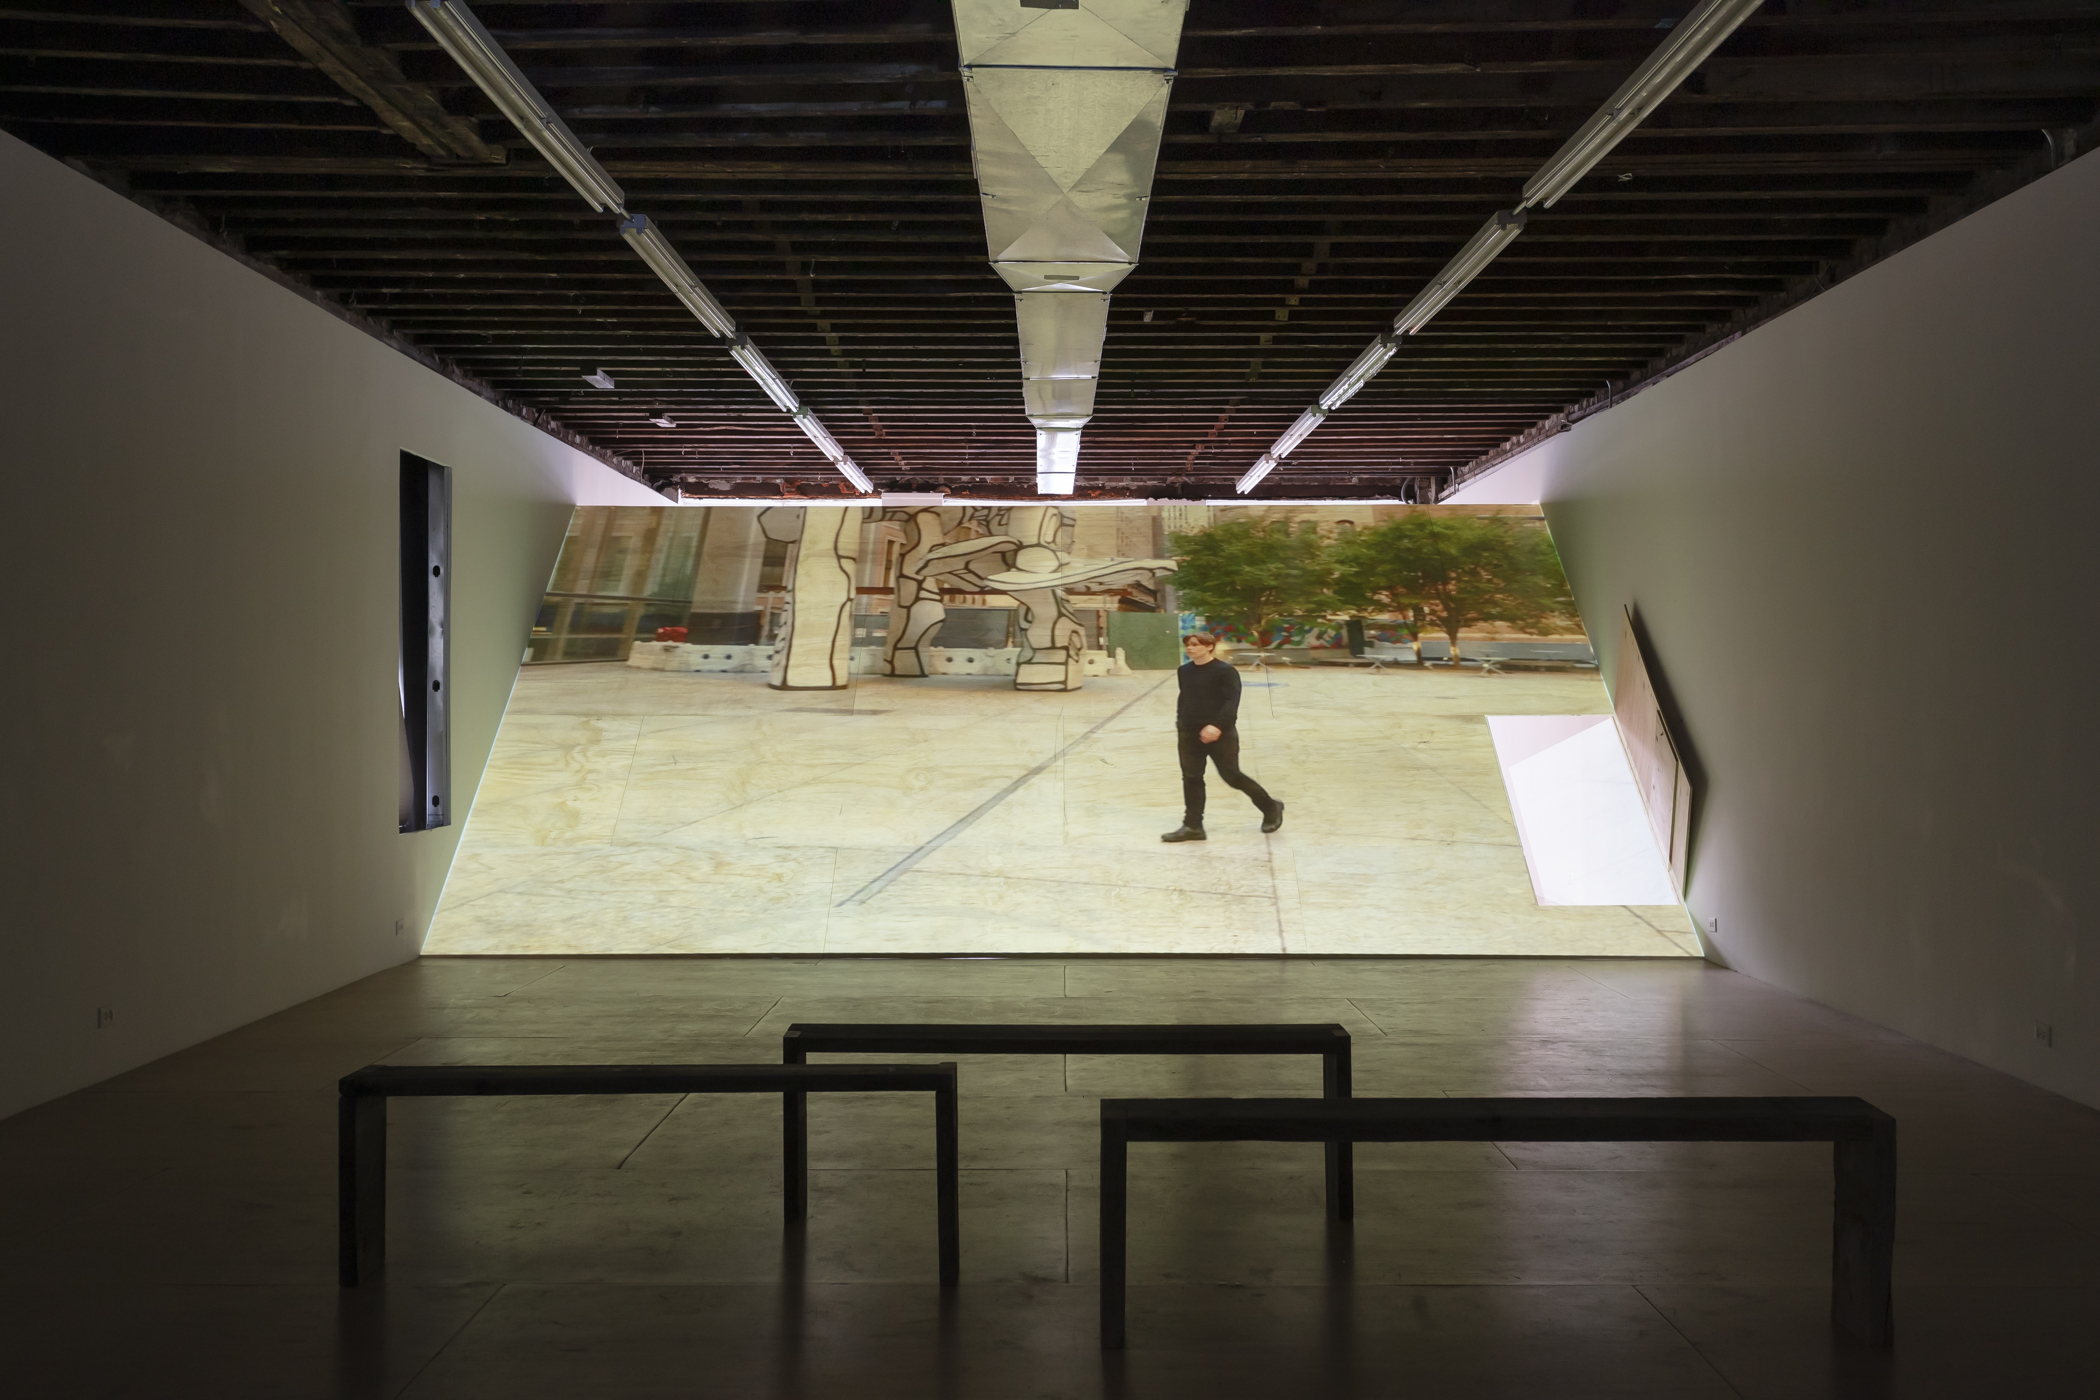 video still of artist falling on pavement projected onto wooden ramp